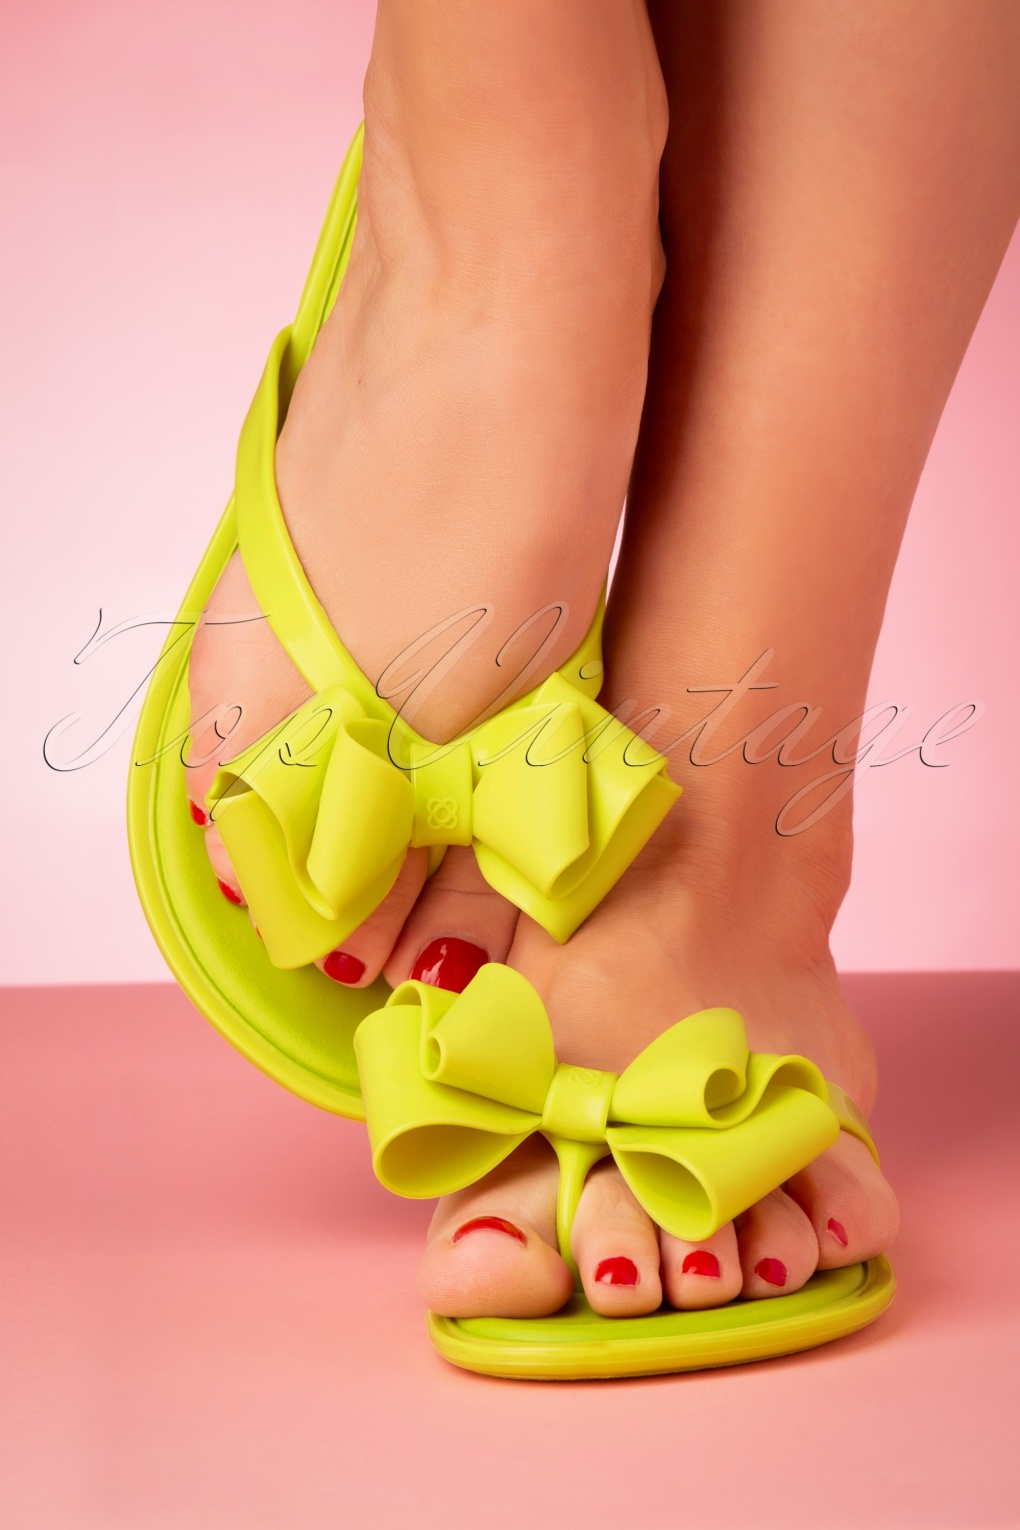 1960s Style Clothing & 60s Fashion 60s Skip Bow Flip Flops in Lime Green £24.95 AT vintagedancer.com